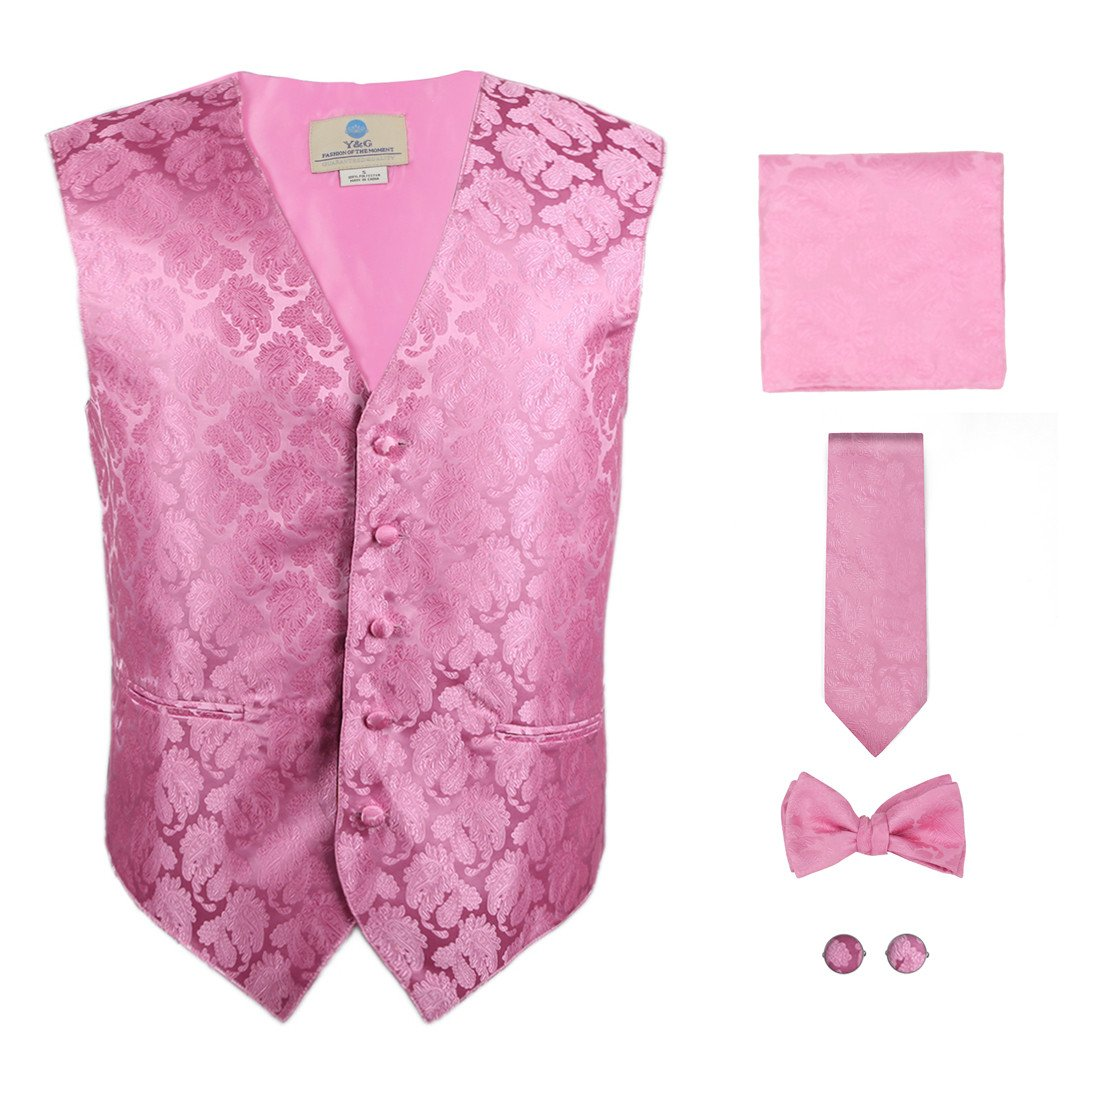 Y/&G Mens Fashion Groom Pattern Mens Vest Tie Bowtie Cufflinks Hanky Best Gifts YGA1B01